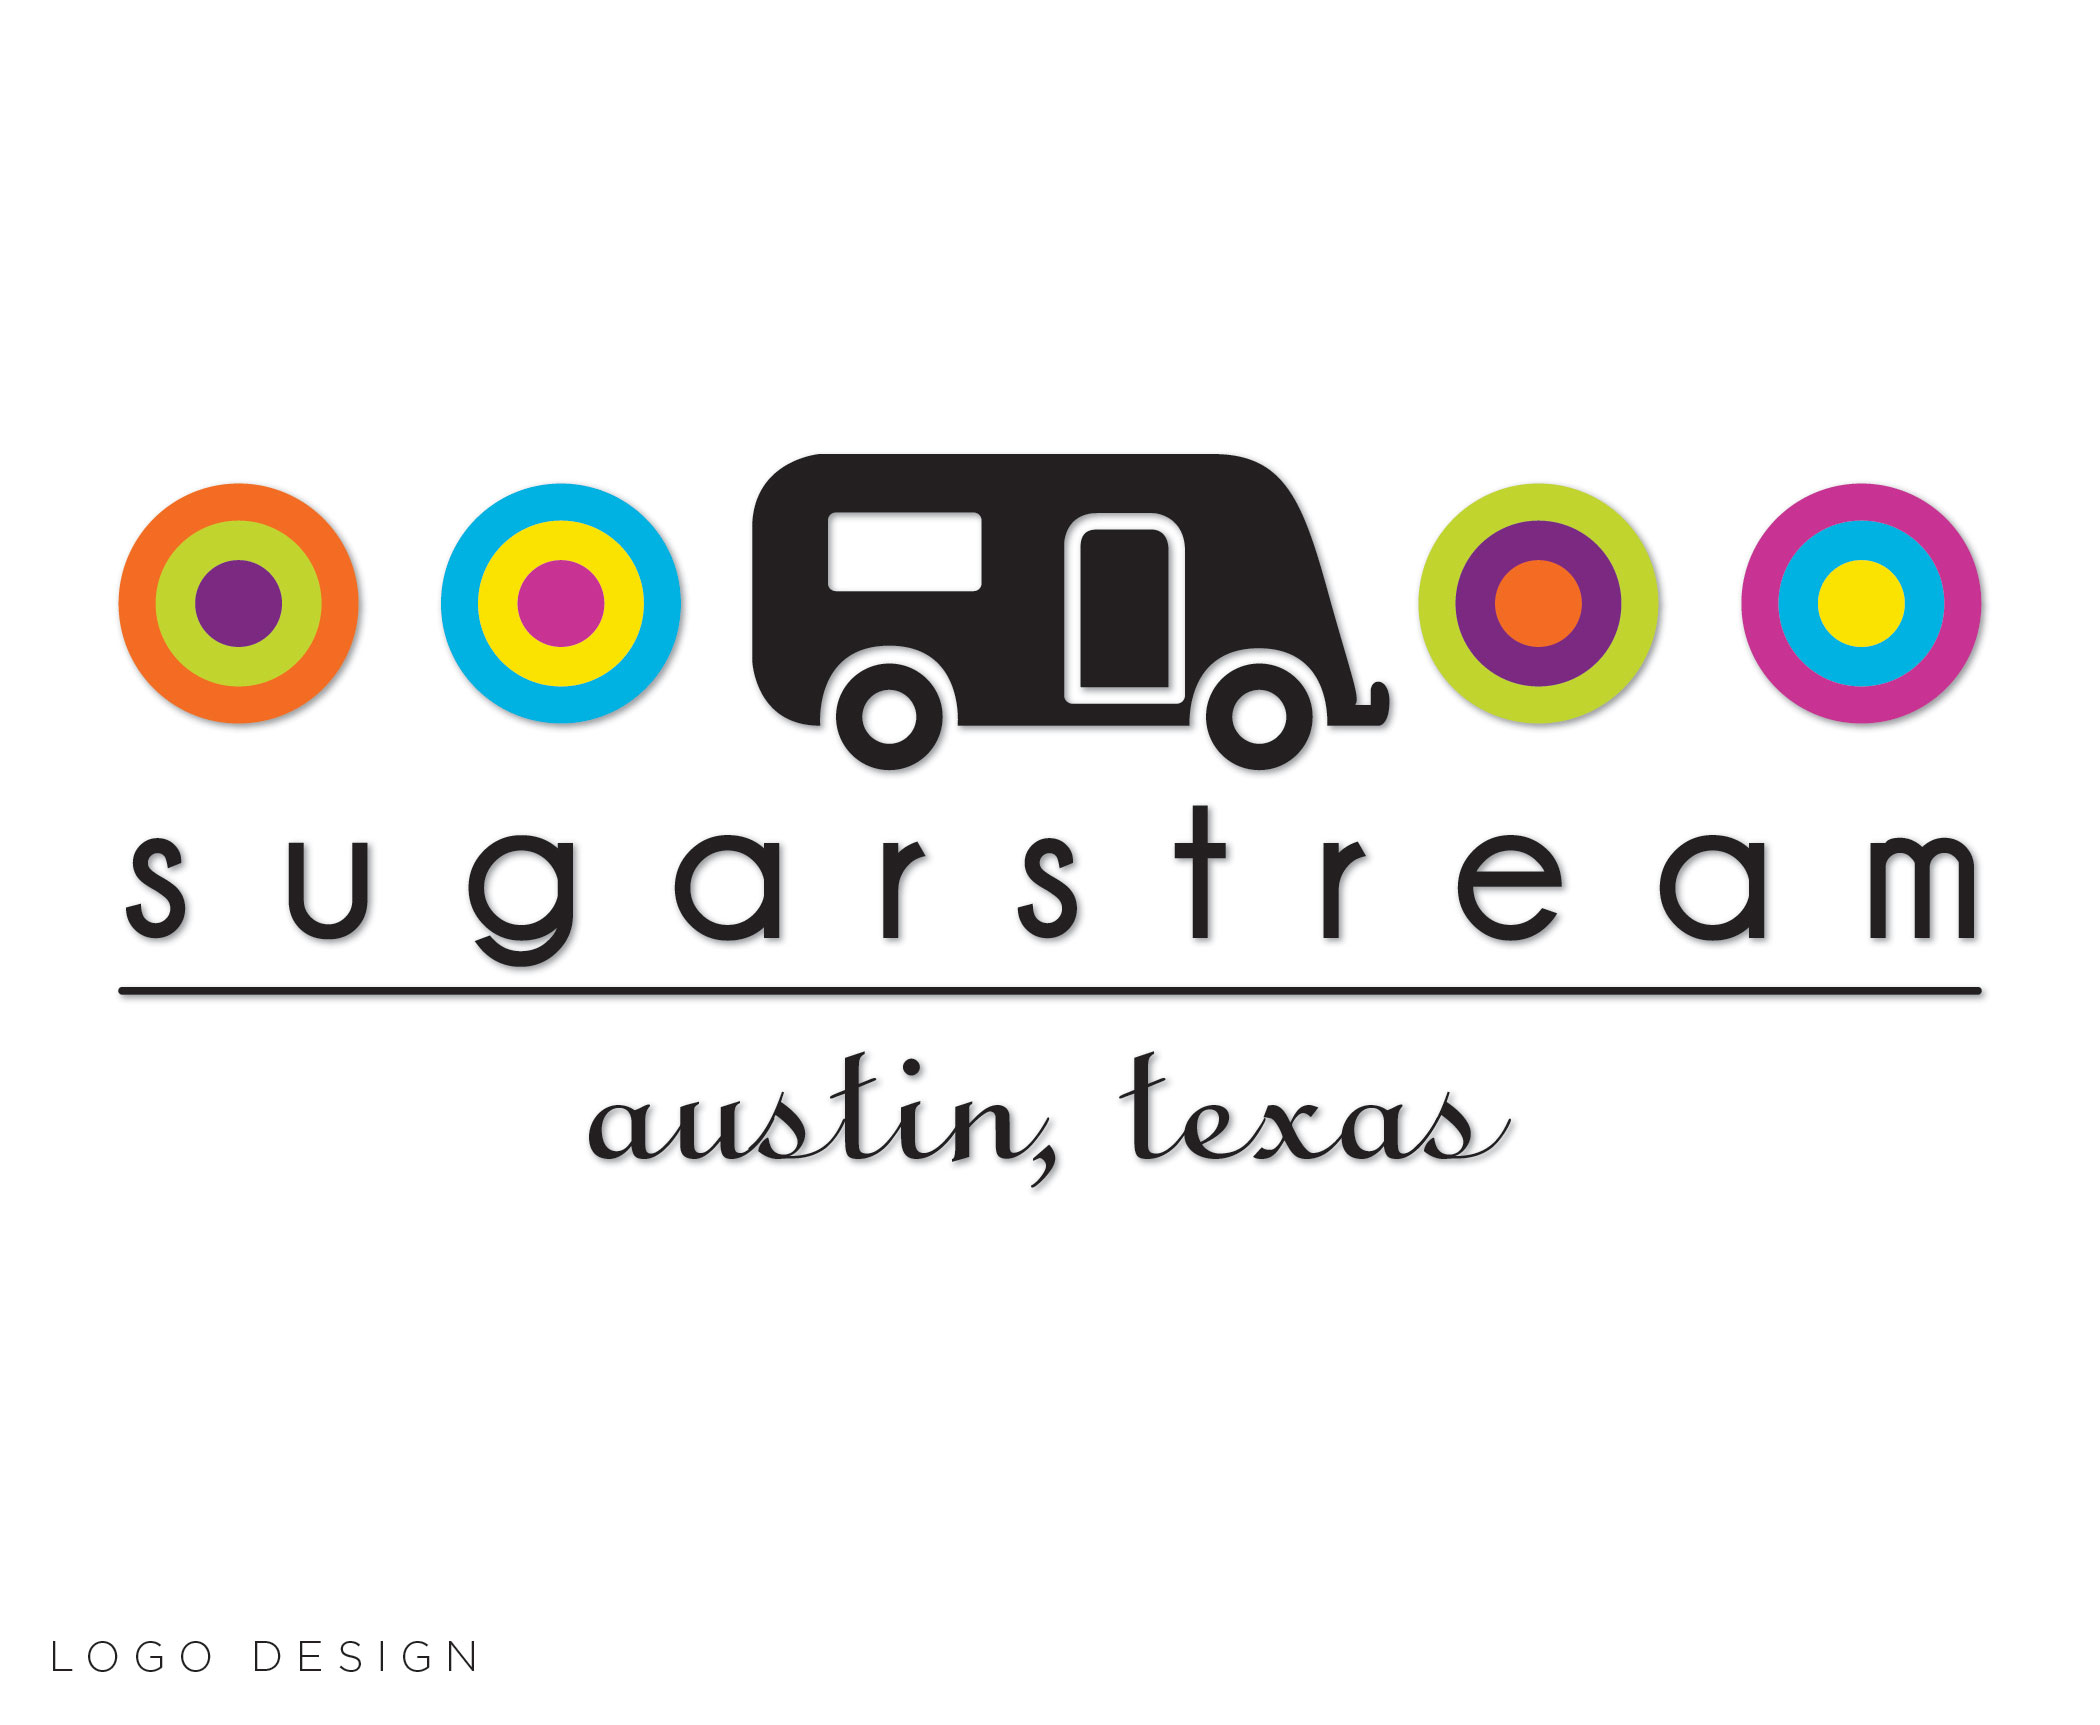 sugarstream-01.jpg